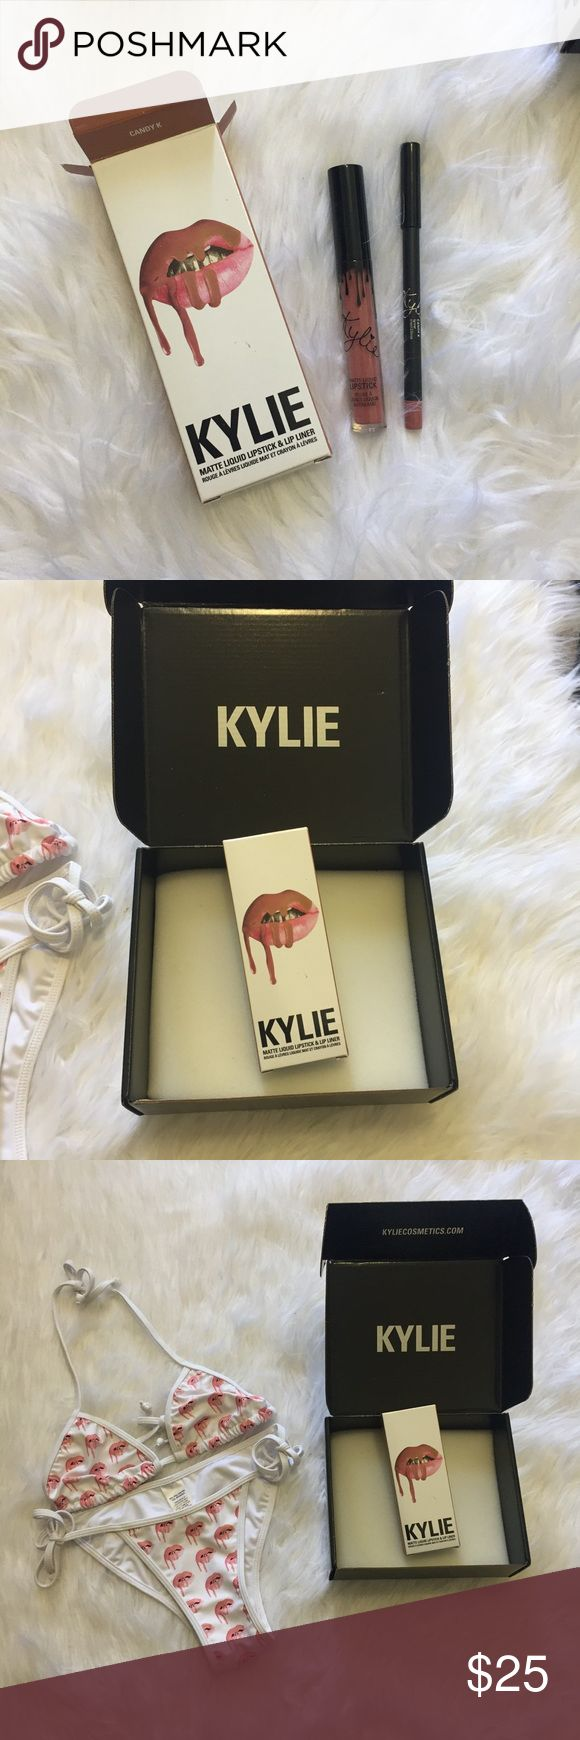 KYLIE COSMETICS brand new CANDY K lip kit Brand new! I was rushing to order and I was ordering on my laptop and it glitched so i tried my phone and it worked but since i was on the same account it added everything twice to my cart and charged me twice! So i have doubles of my order Kylie Cosmetics Makeup Lipstick